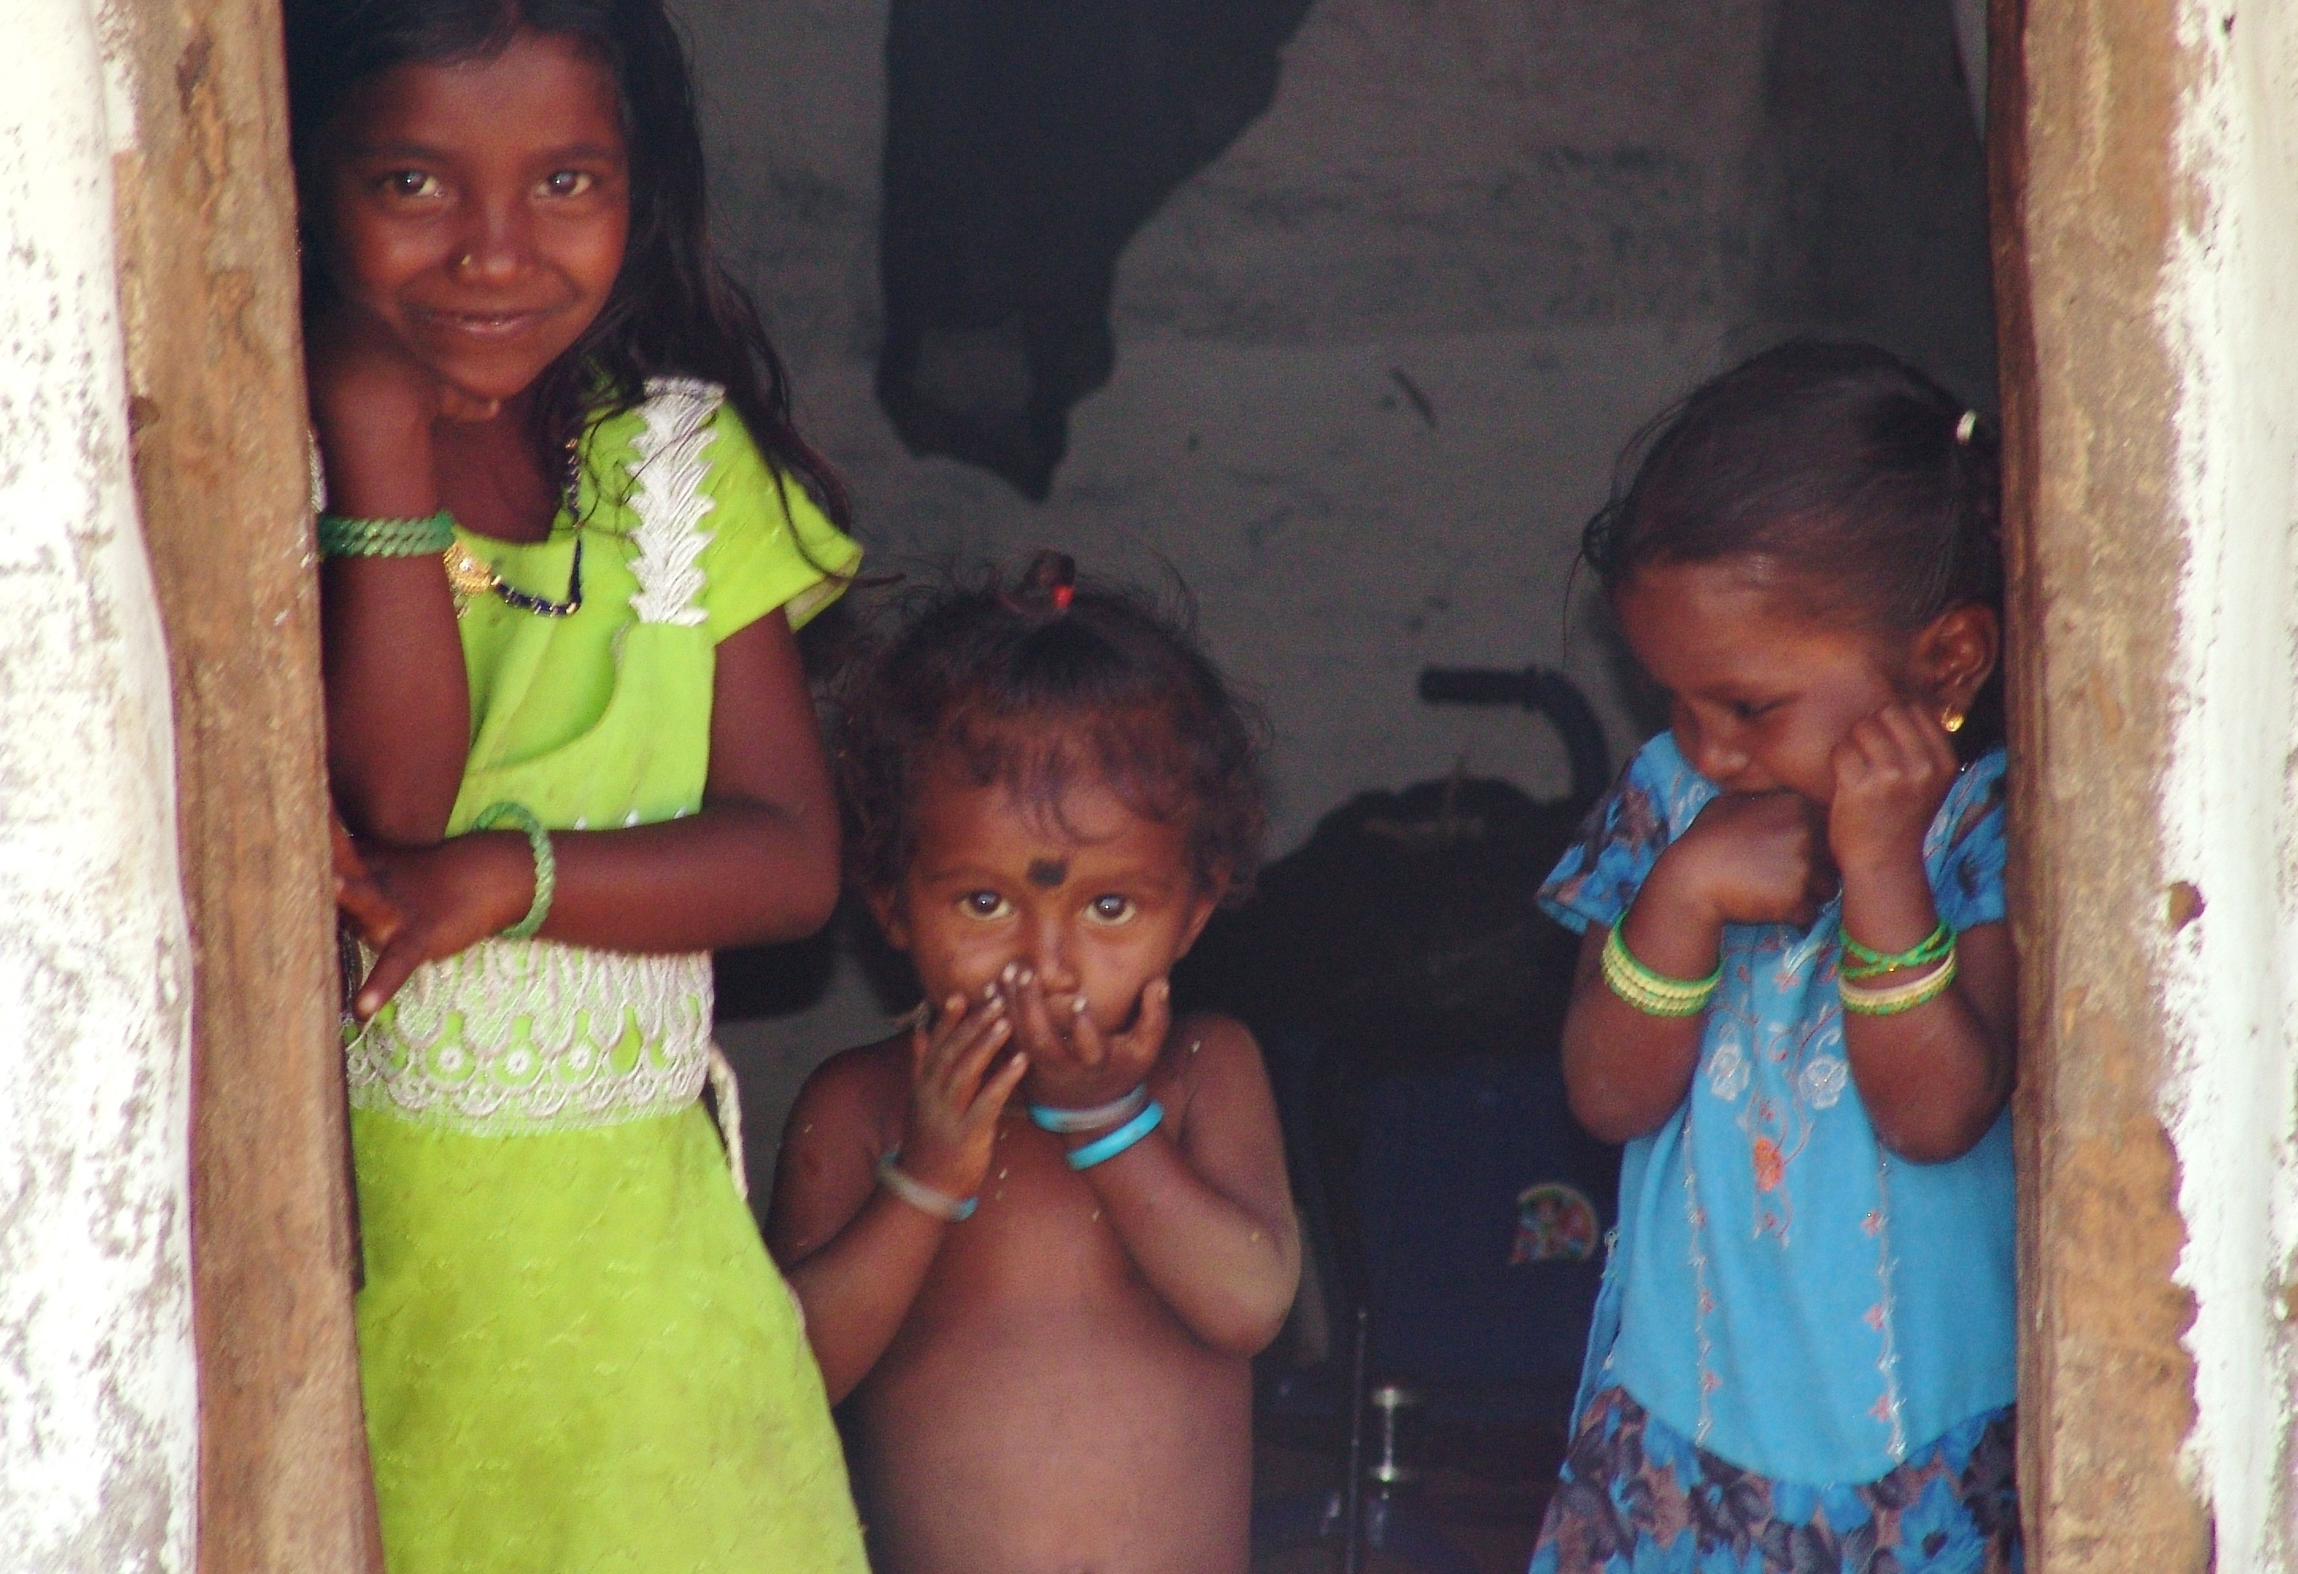 Hundreds of millions of indigenous and rural peoples are vulnerable too  (photo by William Laurance).